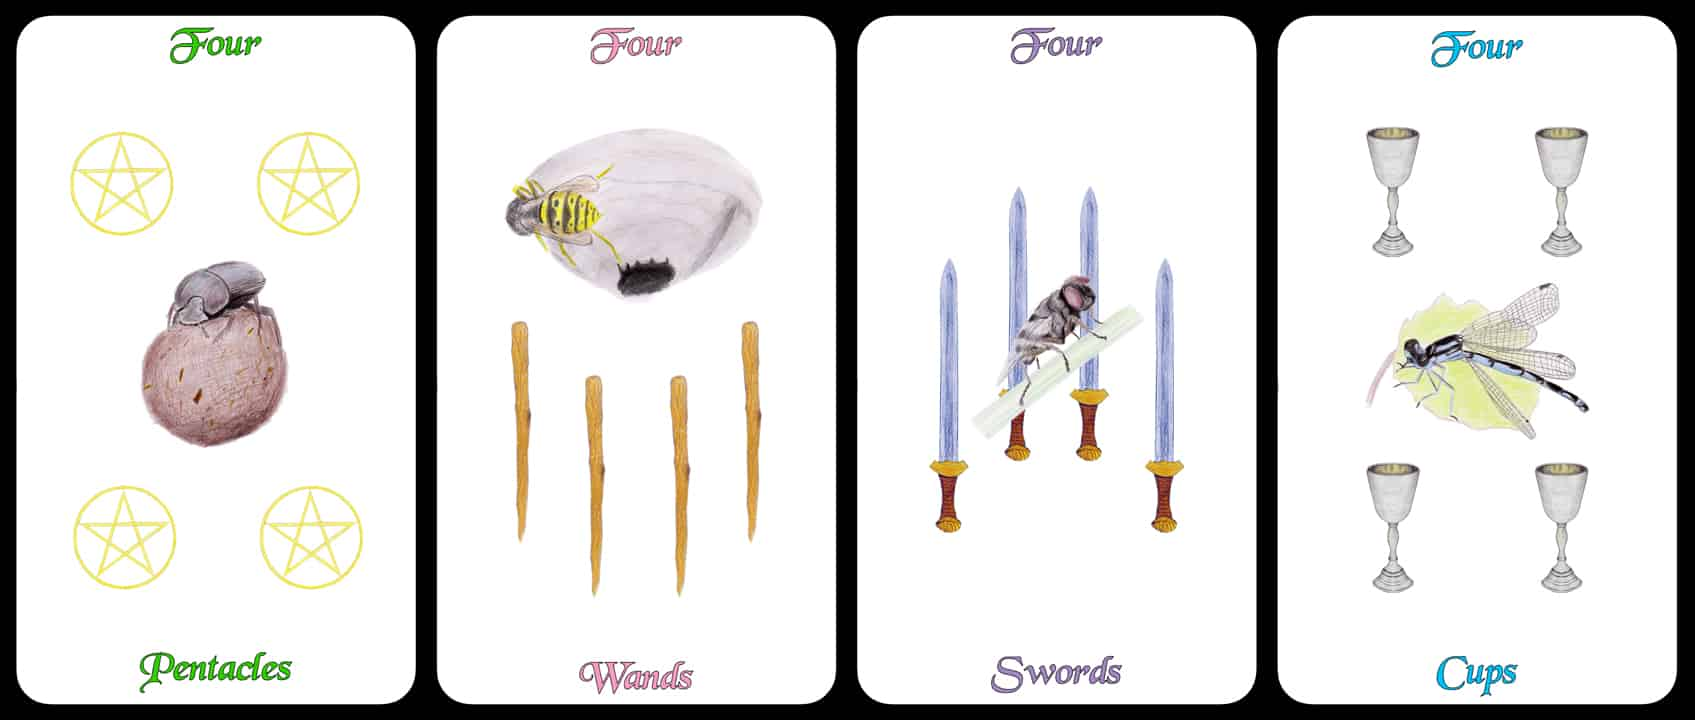 The Fours - The Arthropoda Tarot Deck by Linda Ursin